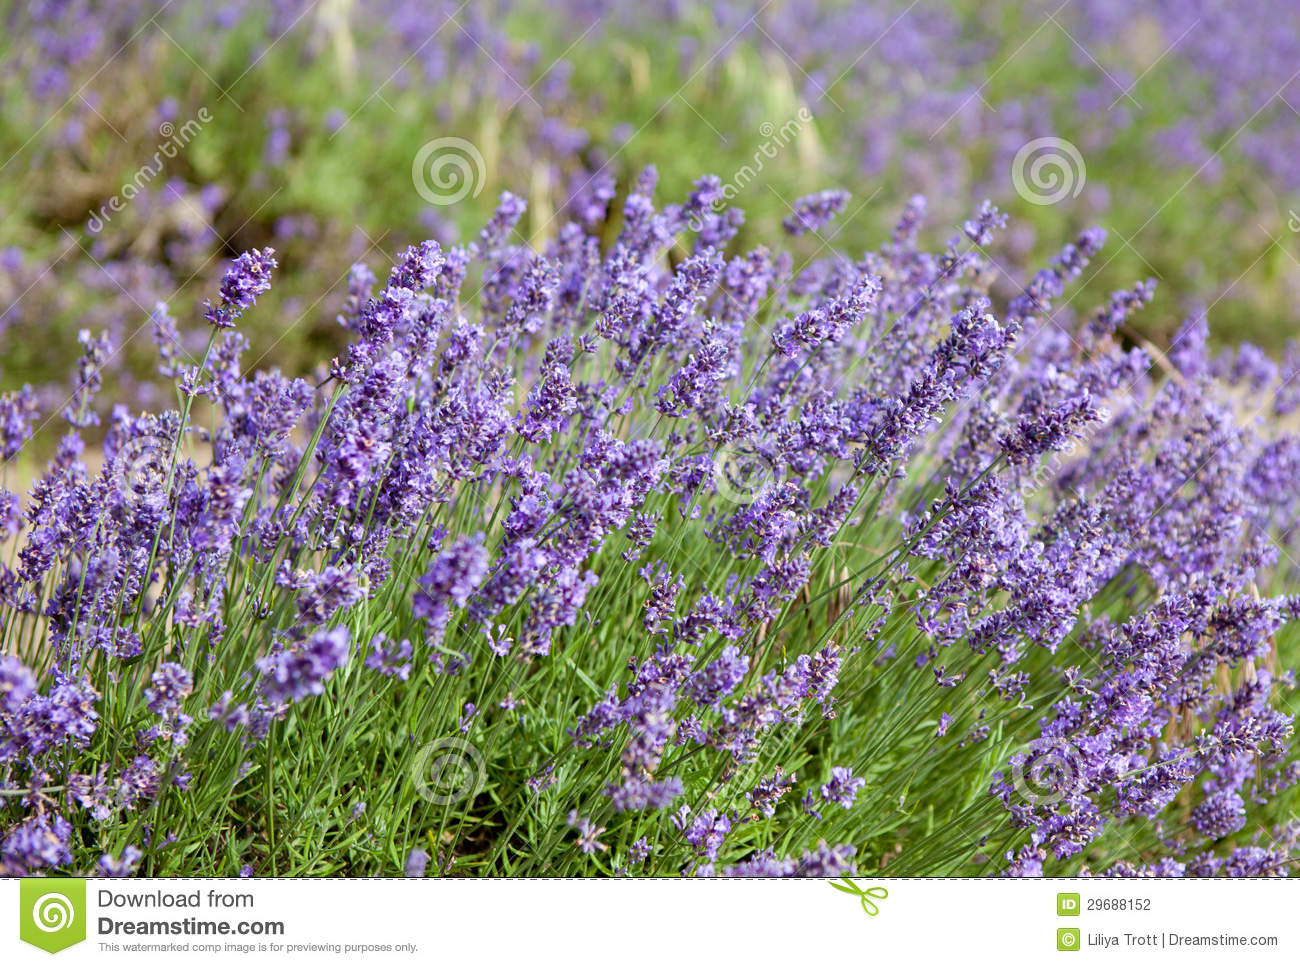 More Similar Stock Images Of Beautiful Lavender Fields In Jersey